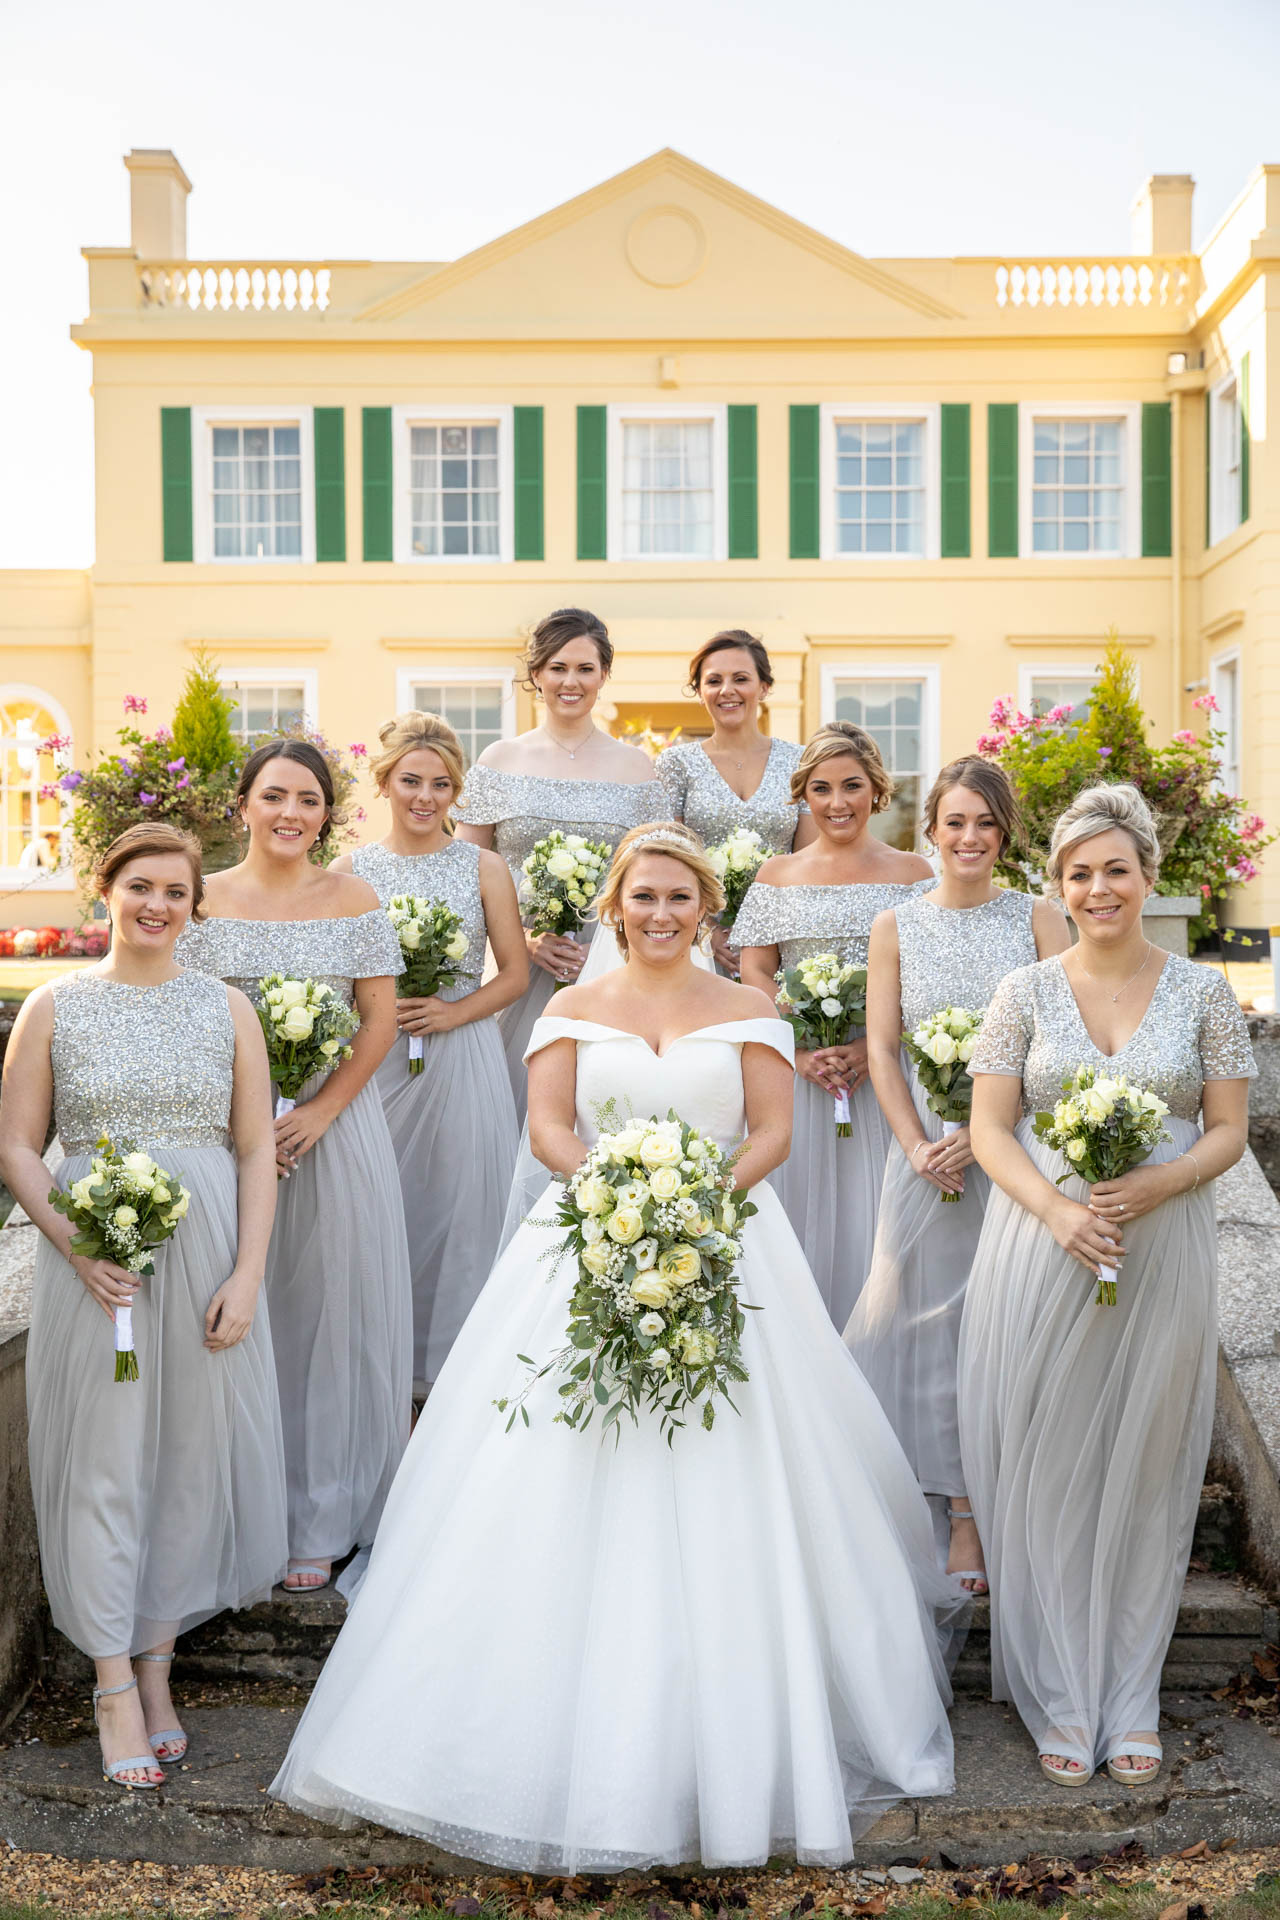 Wedding group photograph of bride and bridesmaids at The Lawn Rochford Essex